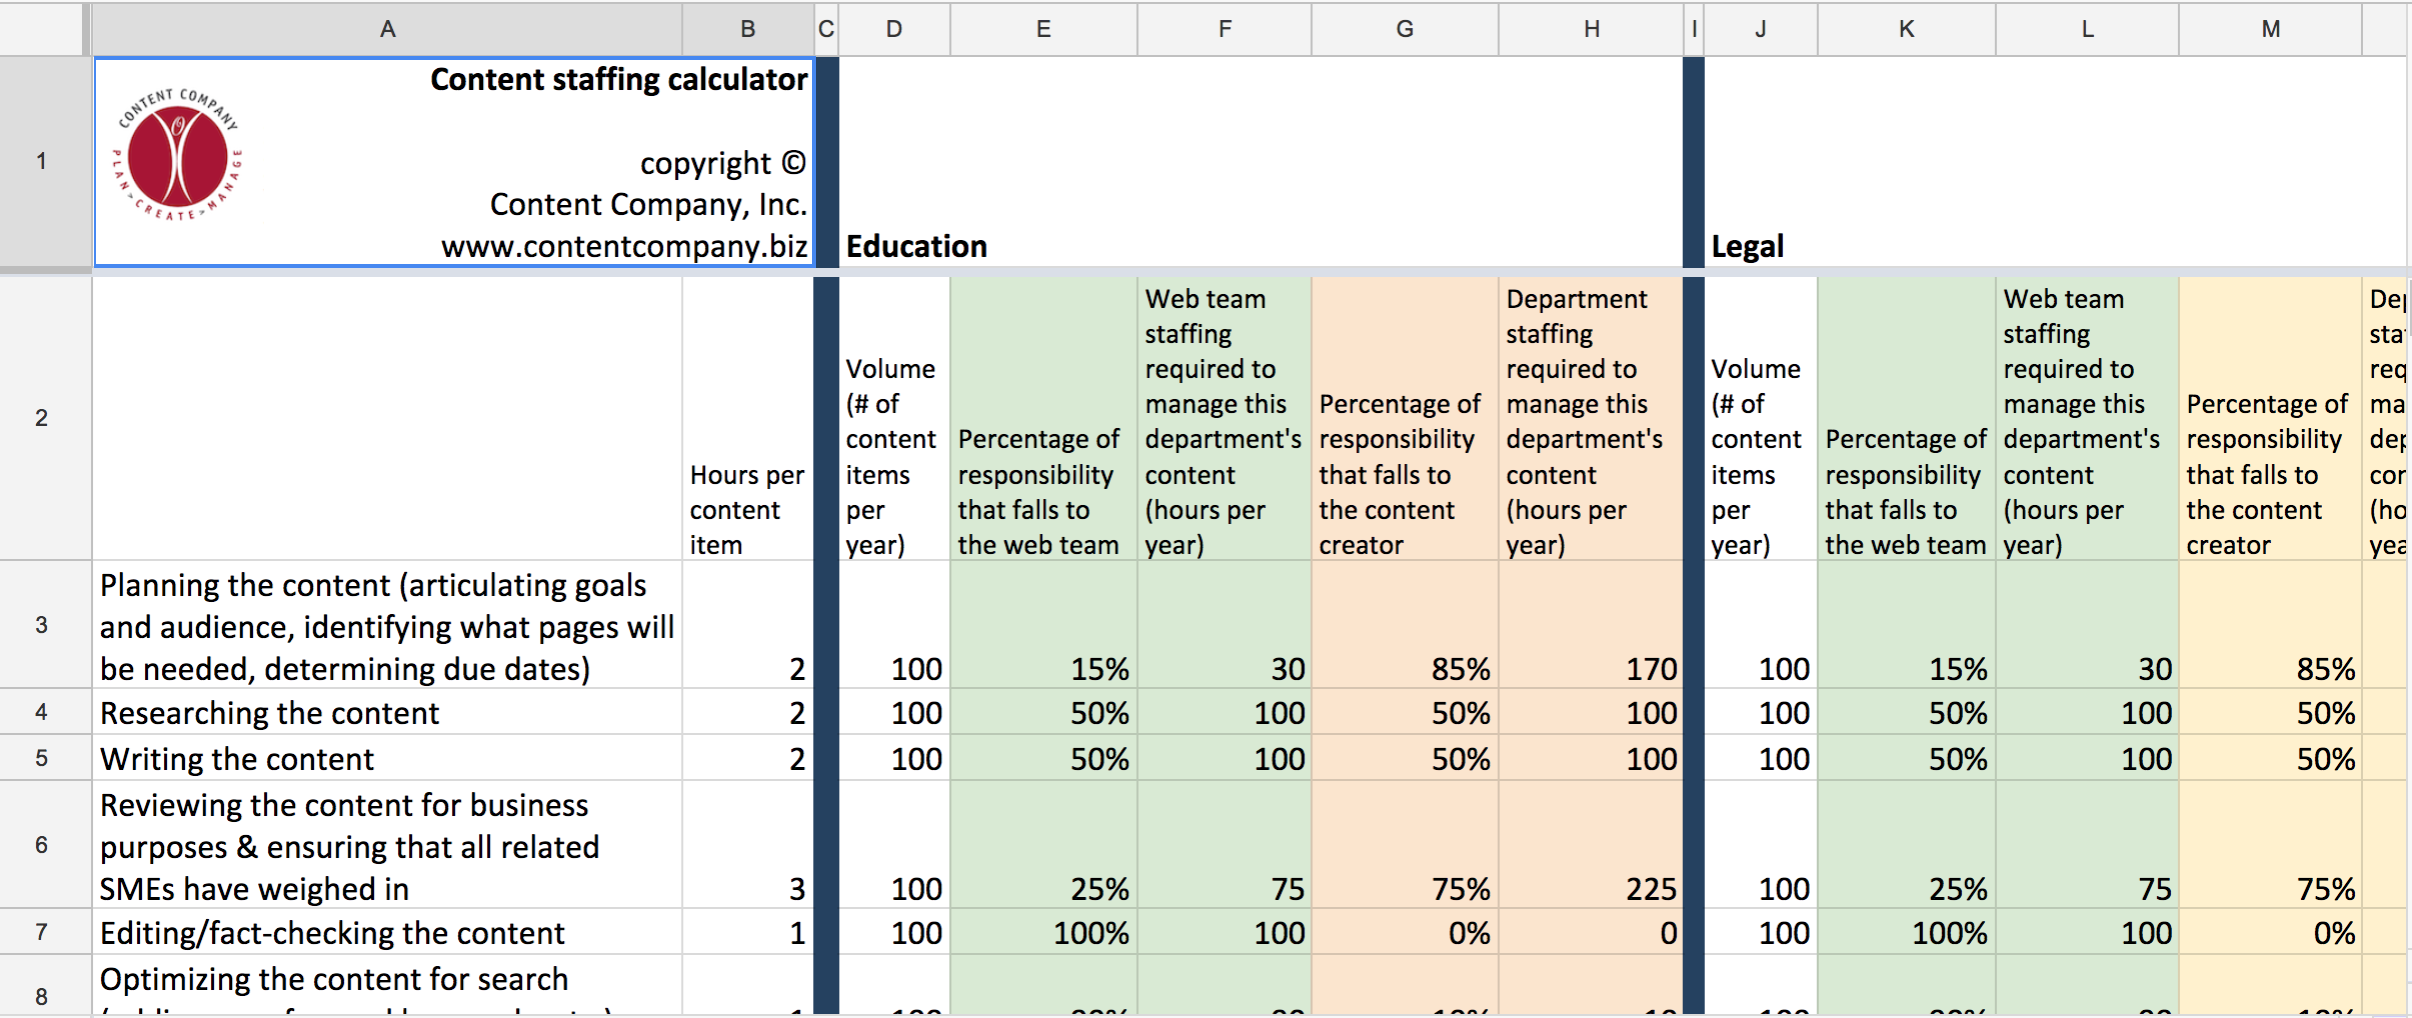 screenshot of content staffing calculator